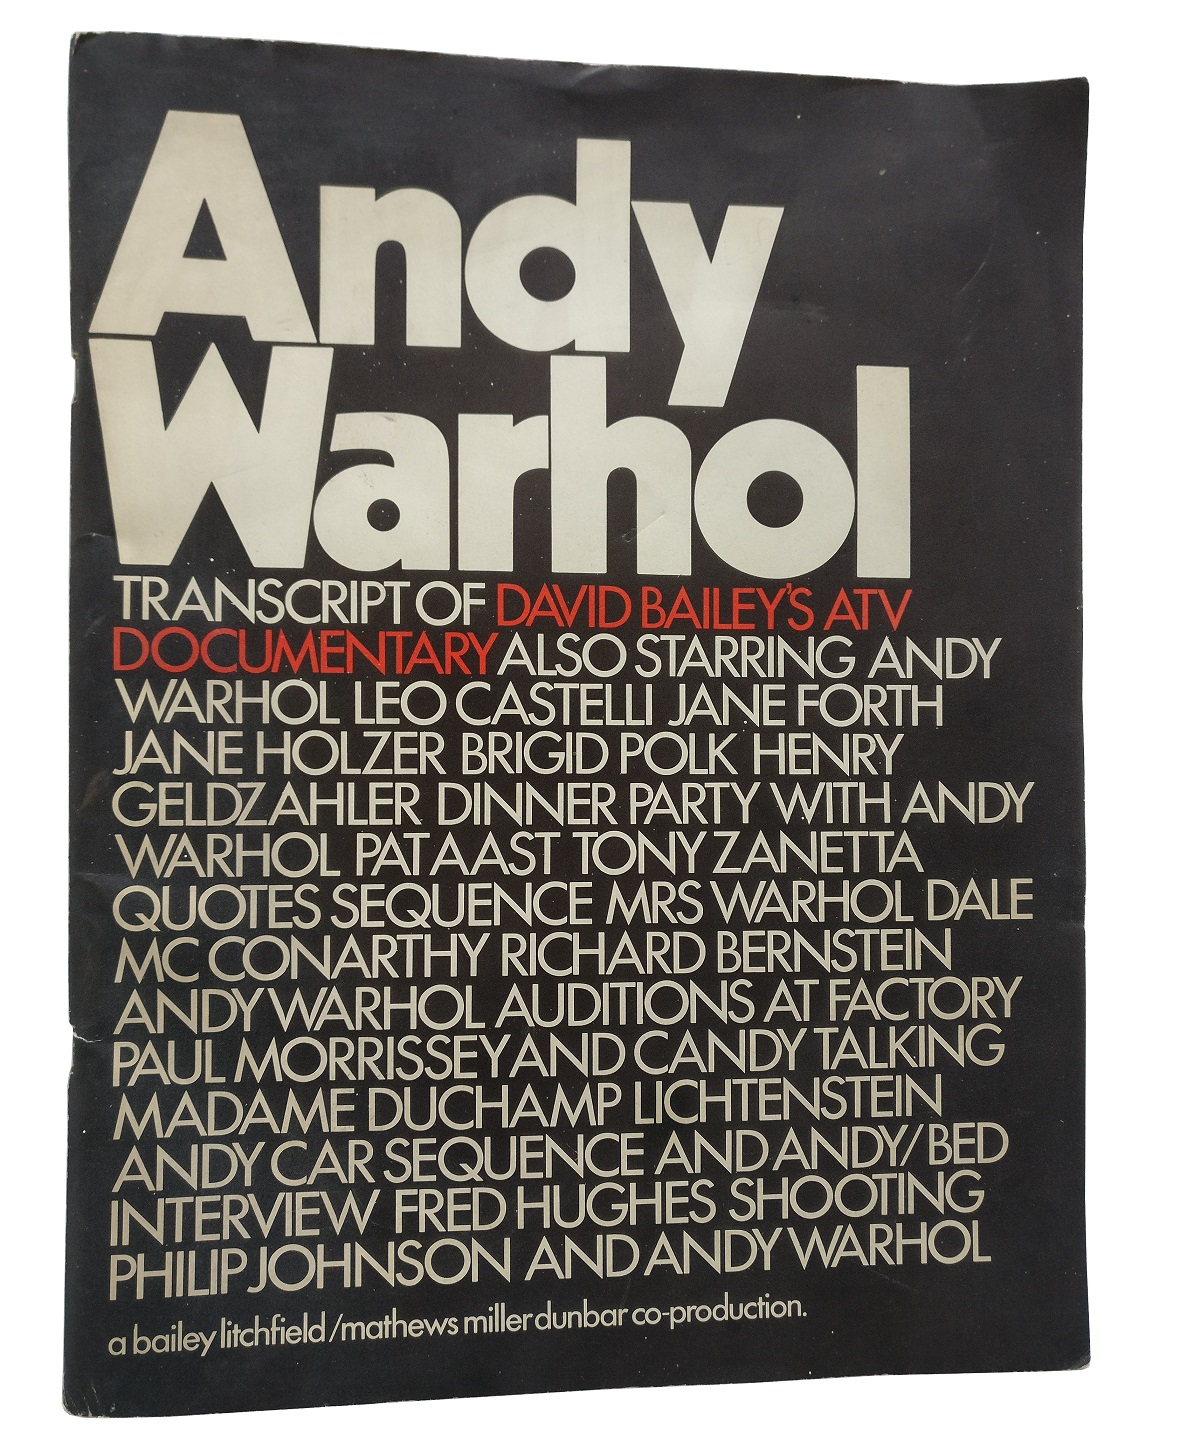 andy warhol transcript of david baileys atv documentary